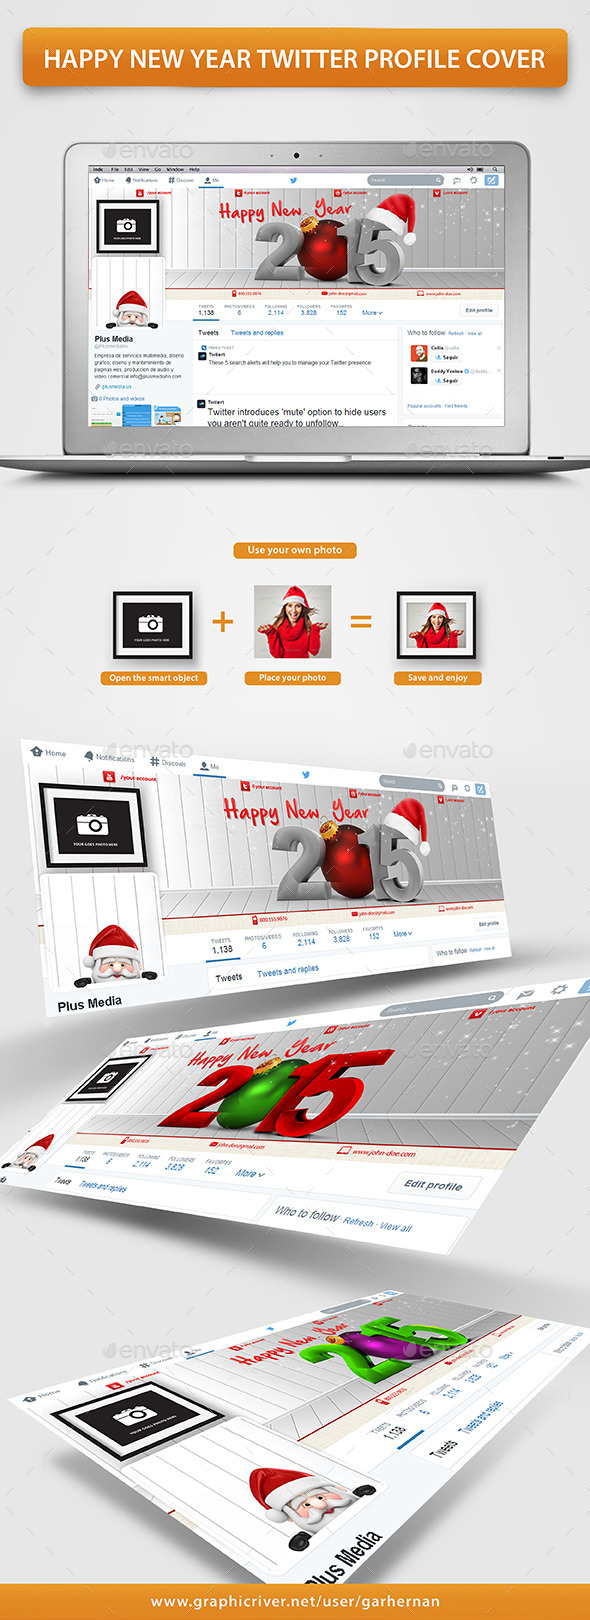 GraphicRiver Happy New Year Twitter Profile Cover 9638992